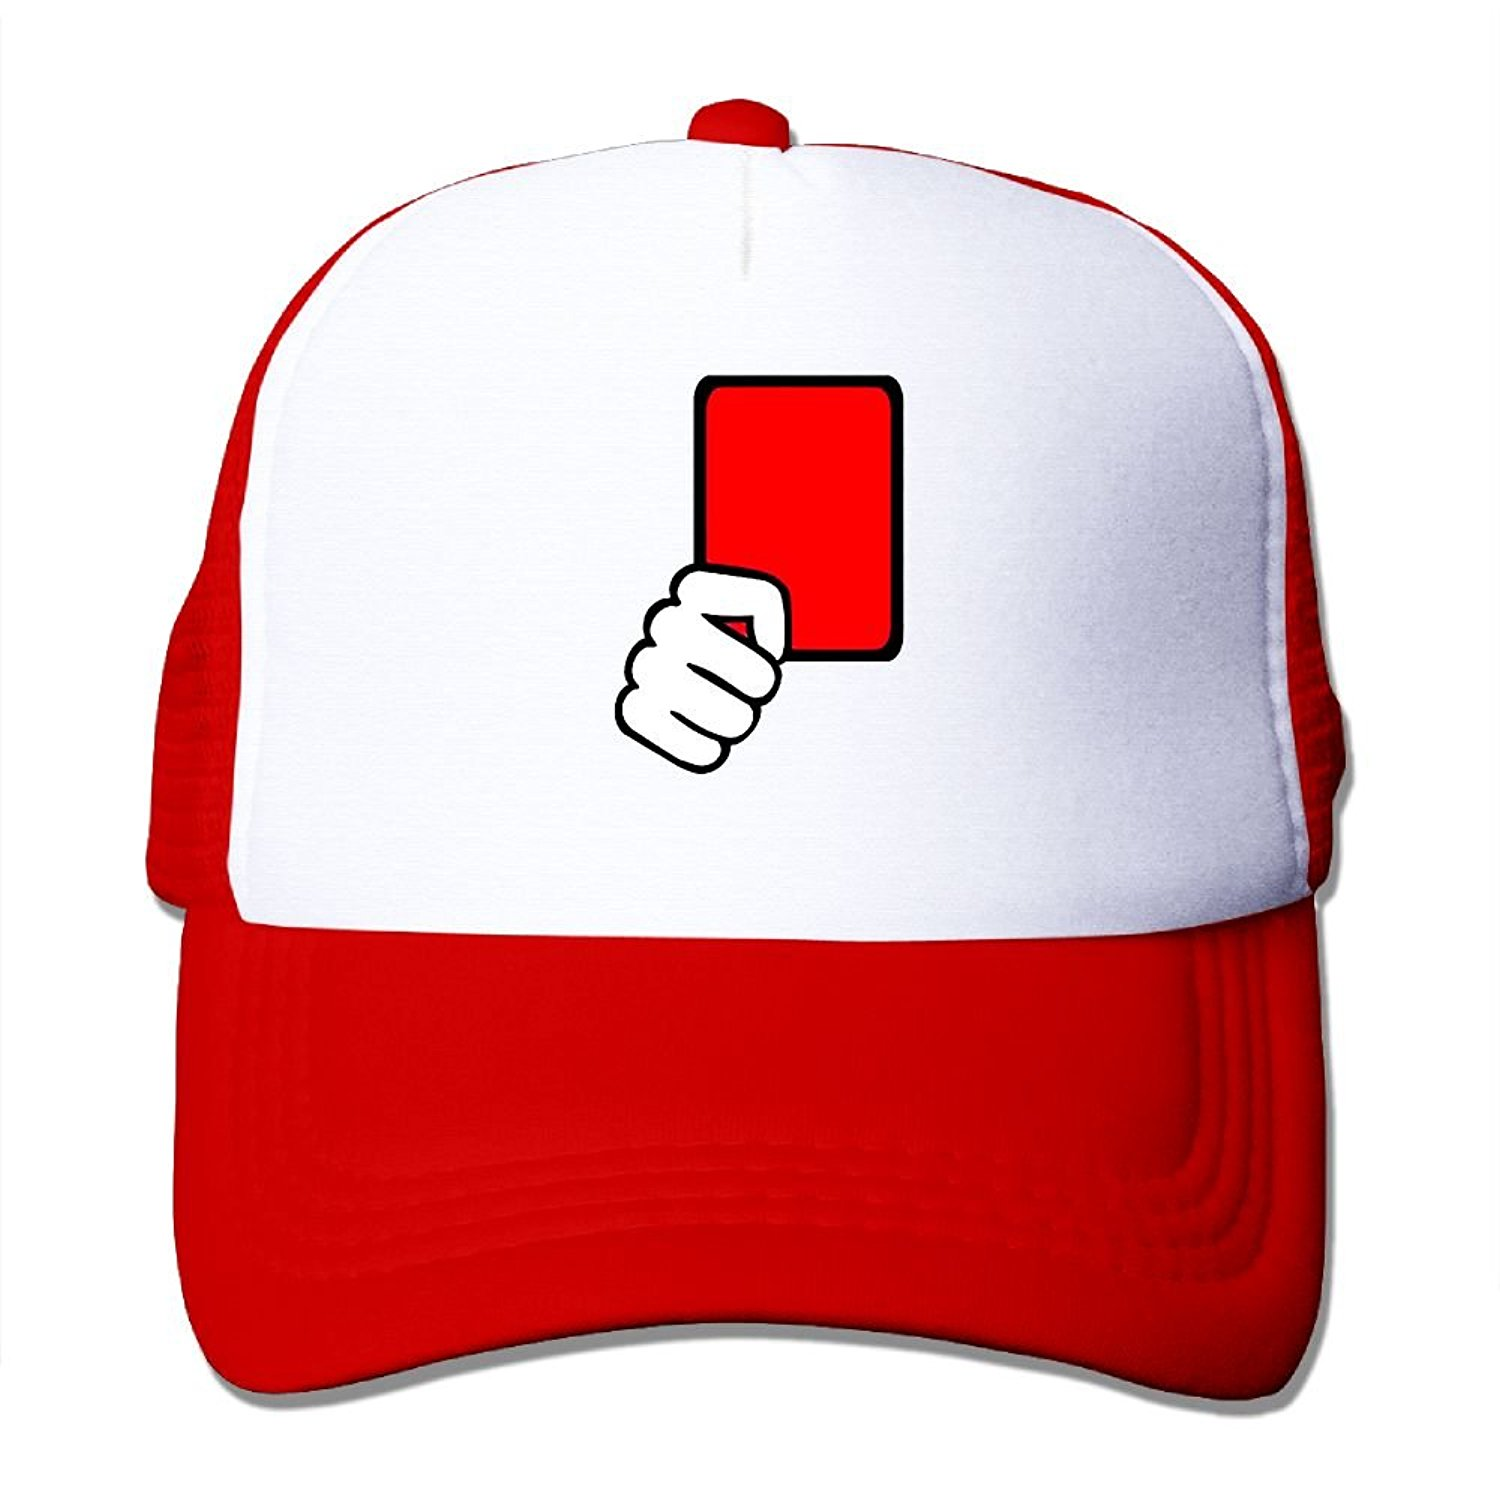 e2bea6bc422 Get Quotations · Crazy Popo Outdoor Sports Hat - Red Card Referee Adjustable  Trucker Hat Cap Adult Unisex Golf